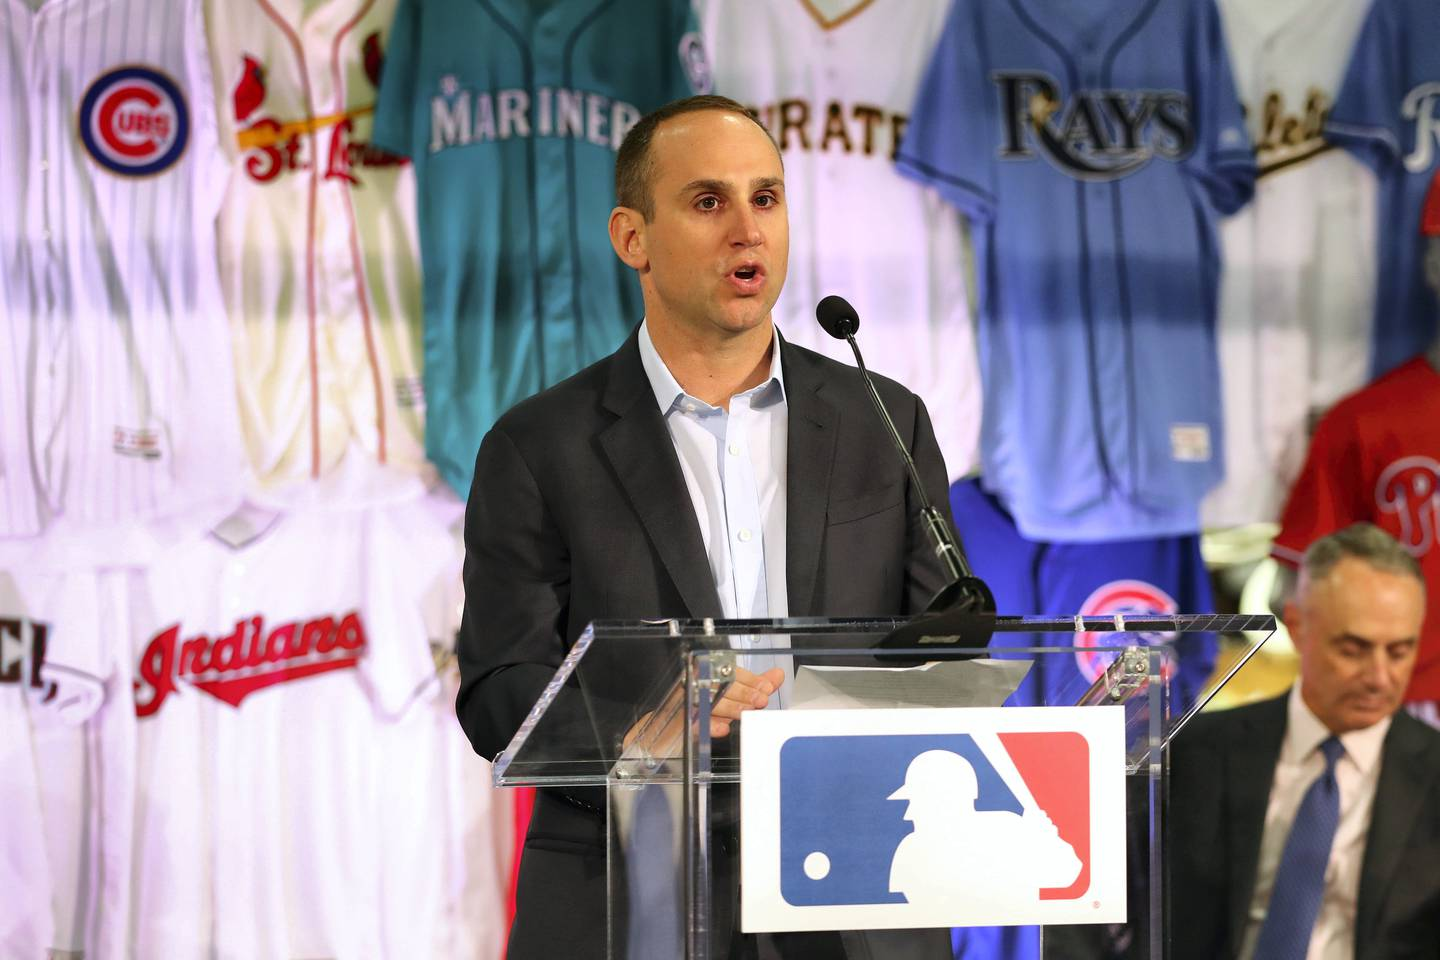 EASTON, PA - APRIL 4: Michael Rubin, Owner and Executive Chairman of Fanatics, speaks during a joint announcement between Fanatics and VF Licensed Sports Group at the Majestic Factory on Tuesday April 4, 2017 in Easton, Pennsylvania. (Photo by Alex Trautwig/MLB Photos via Getty Images)